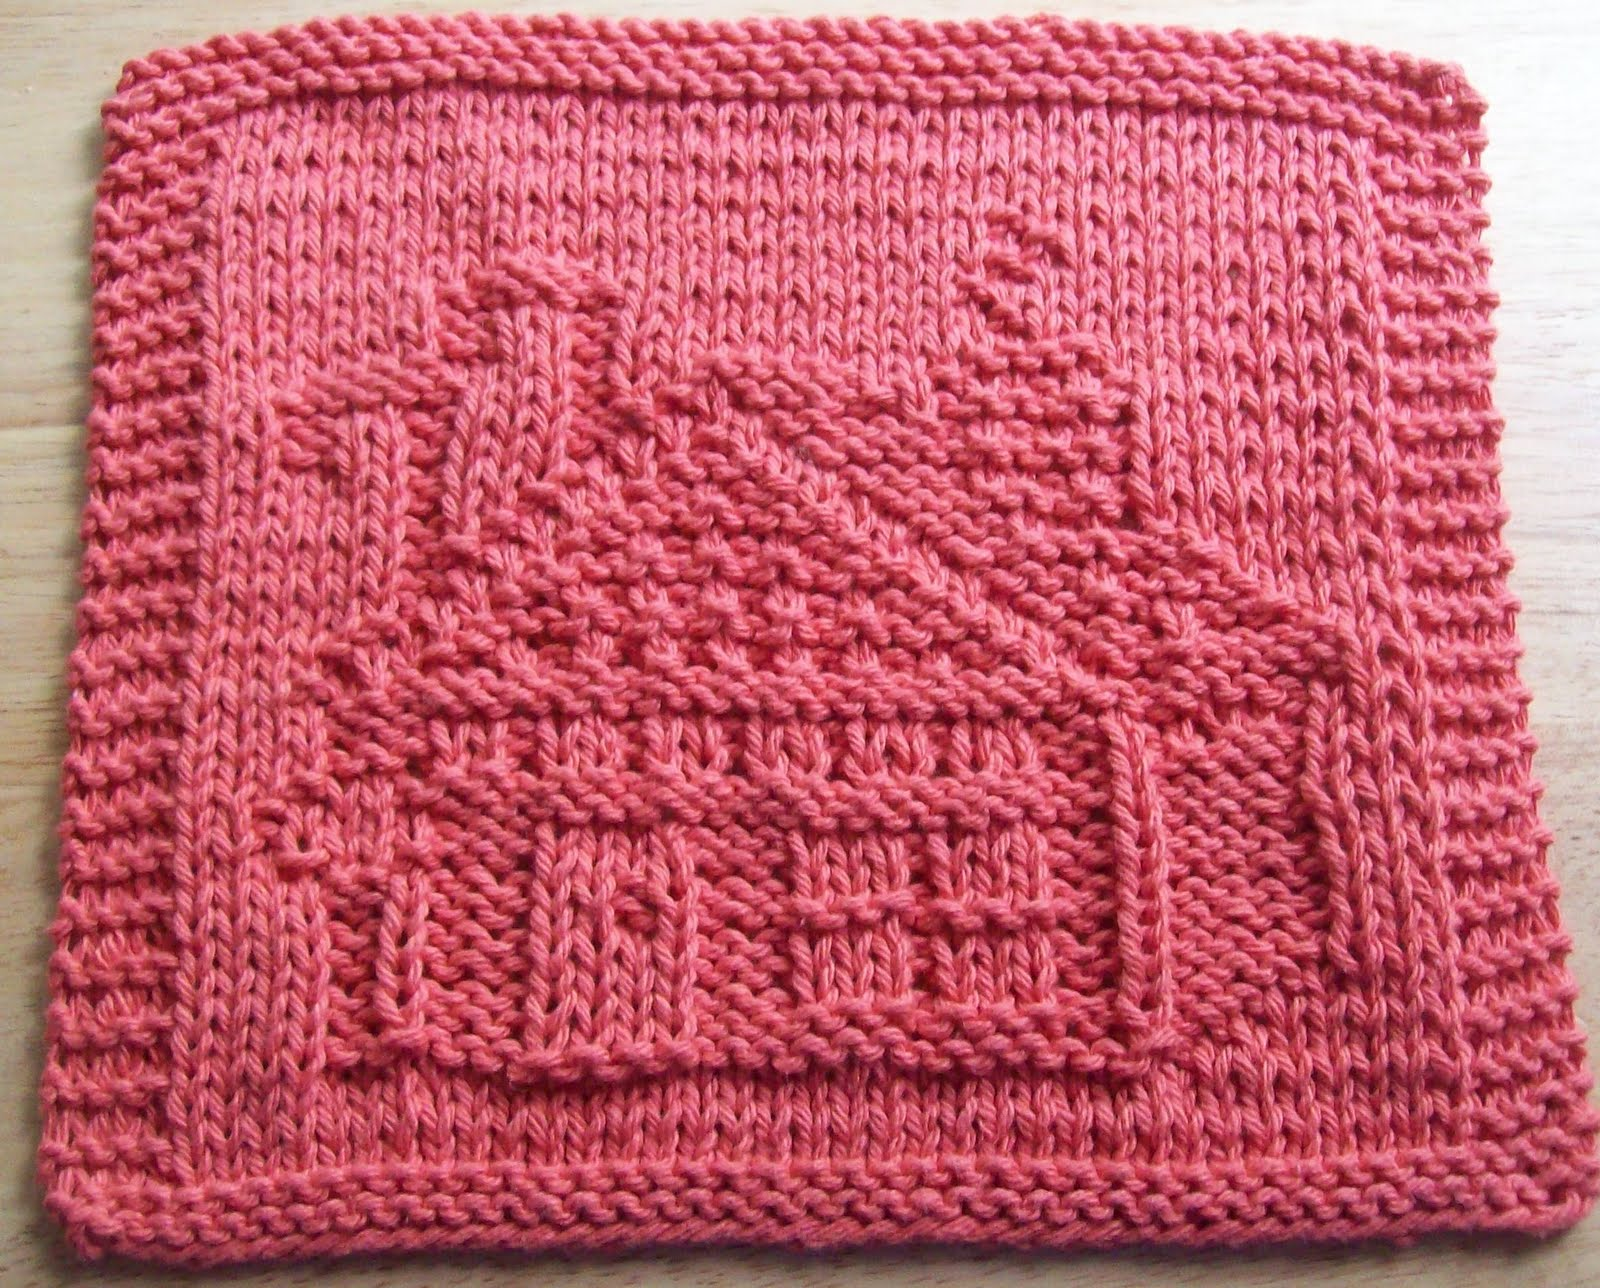 Dish Cloth Knitting Pattern : DigKnitty Designs: Gingerbread House Too Knit Dishcloth Pattern